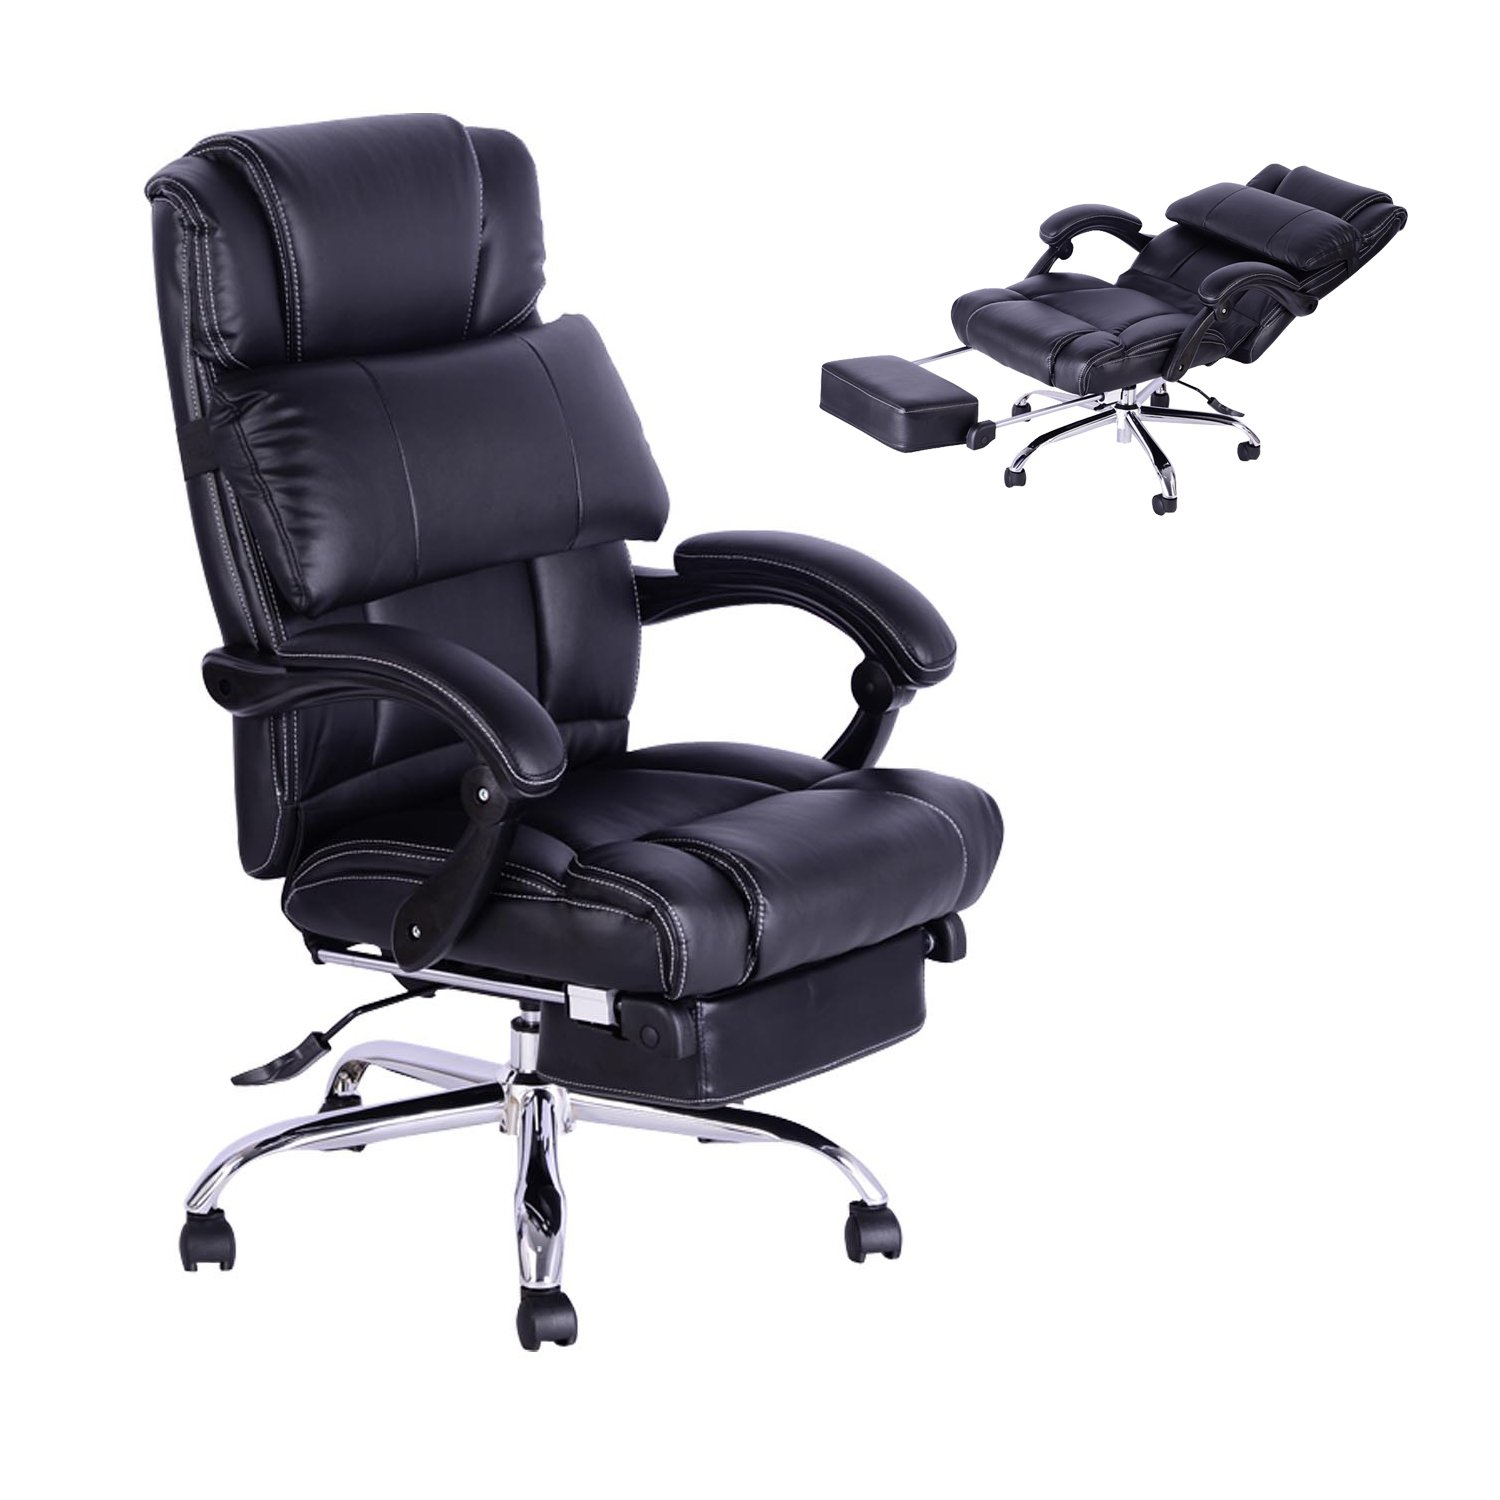 Homcom High Back Office Swivel Executive Leather Desk Chair Recliner Reclining Napping Armchair PC Computer Chair Height Adjustable Amazon.co.uk Office ...  sc 1 st  Amazon UK & Homcom High Back Office Swivel Executive Leather Desk Chair ... islam-shia.org